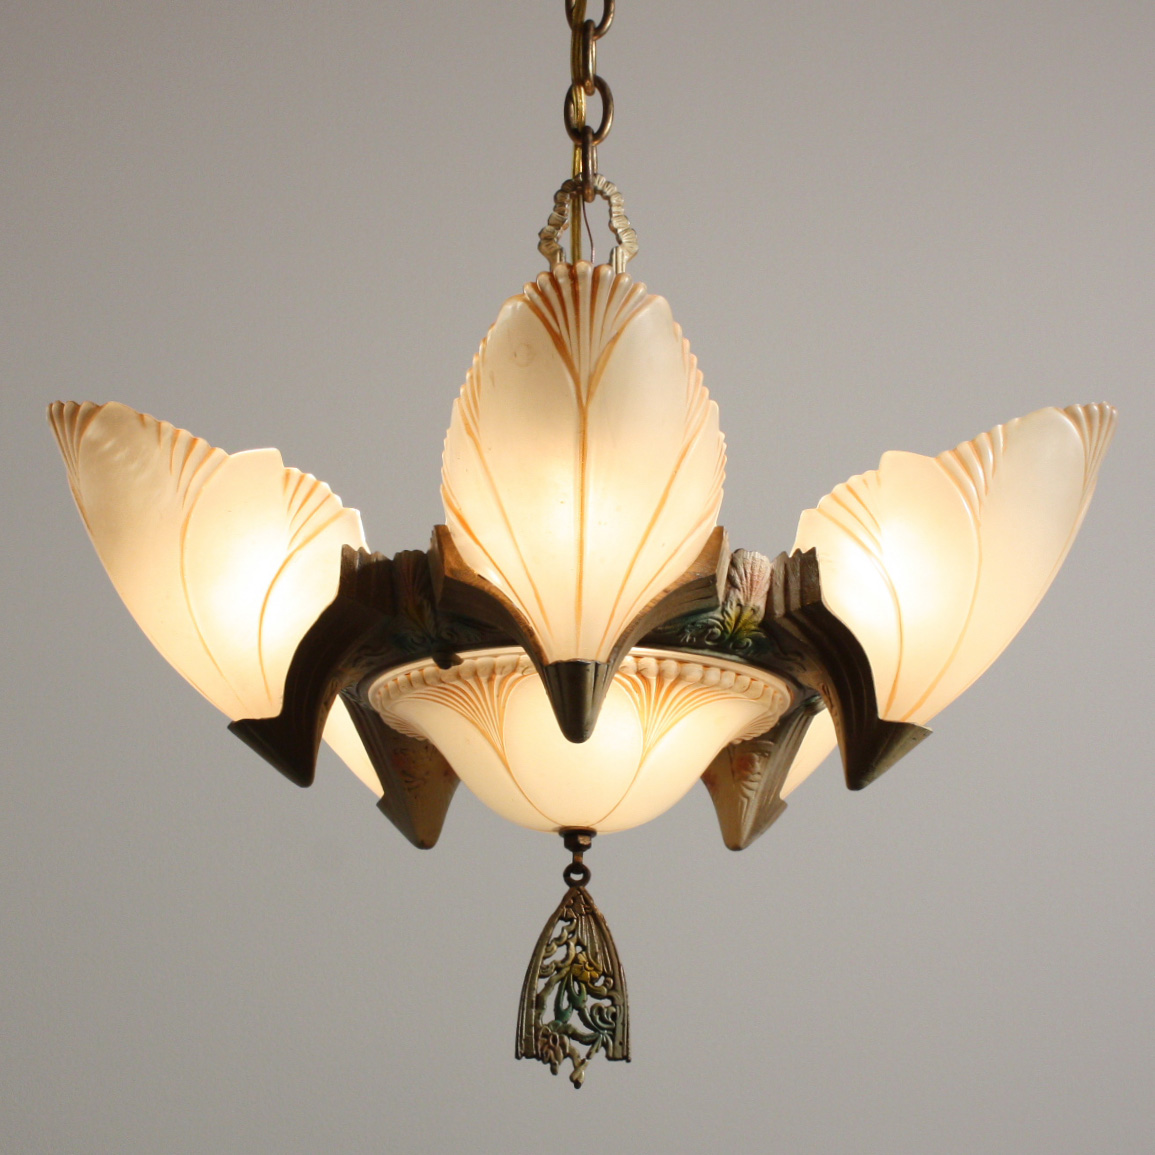 Marvelous antique art deco batwing slip shade chandelier c1930 a remarkable antique art deco seven light batwing slip shade chandelier with its original two tone finish and polychrome accents dating from the 1930s arubaitofo Image collections